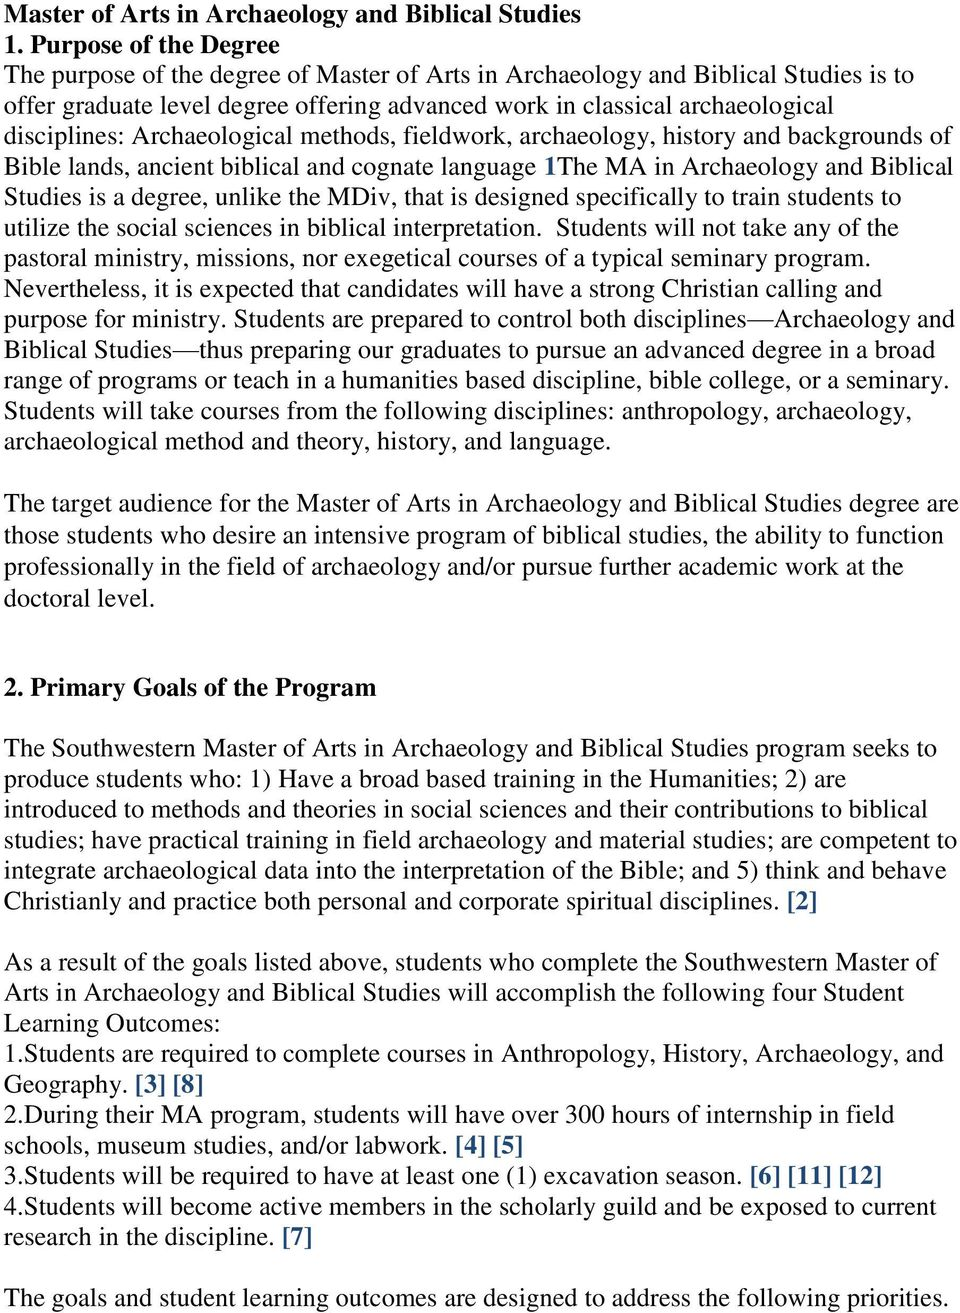 Archaeological methods, fieldwork, archaeology, history and backgrounds of Bible lands, ancient biblical and cognate language 1The MA in Archaeology and Biblical Studies is a degree, unlike the MDiv,